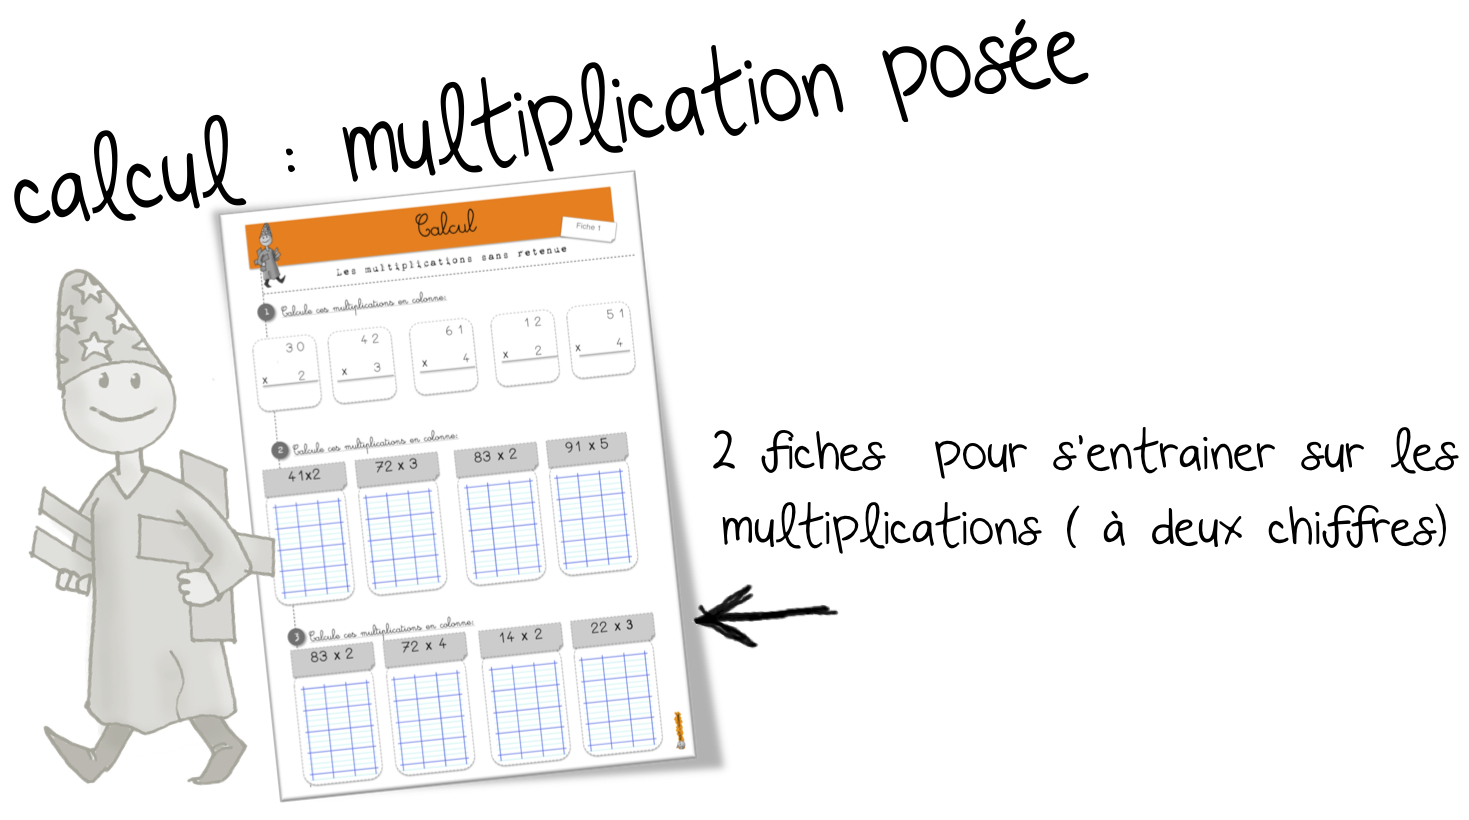 La multiplication pos e exercices bout de gomme for Exercice de multiplication